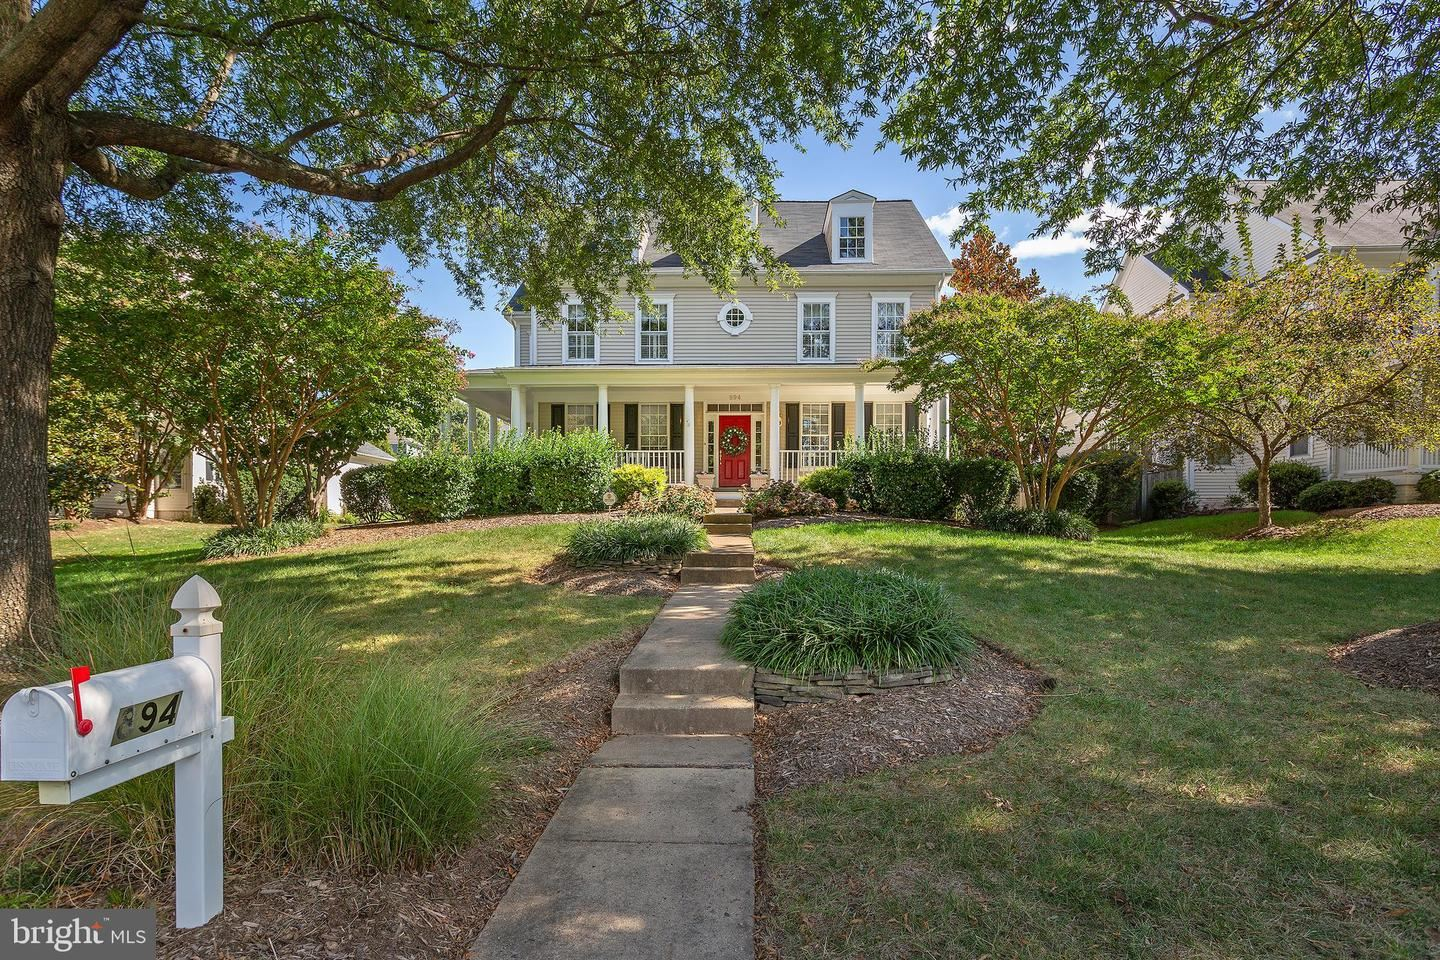 Photo of 894 STATION ST, HERNDON, VA 20170 (MLS # VAFX1161138)